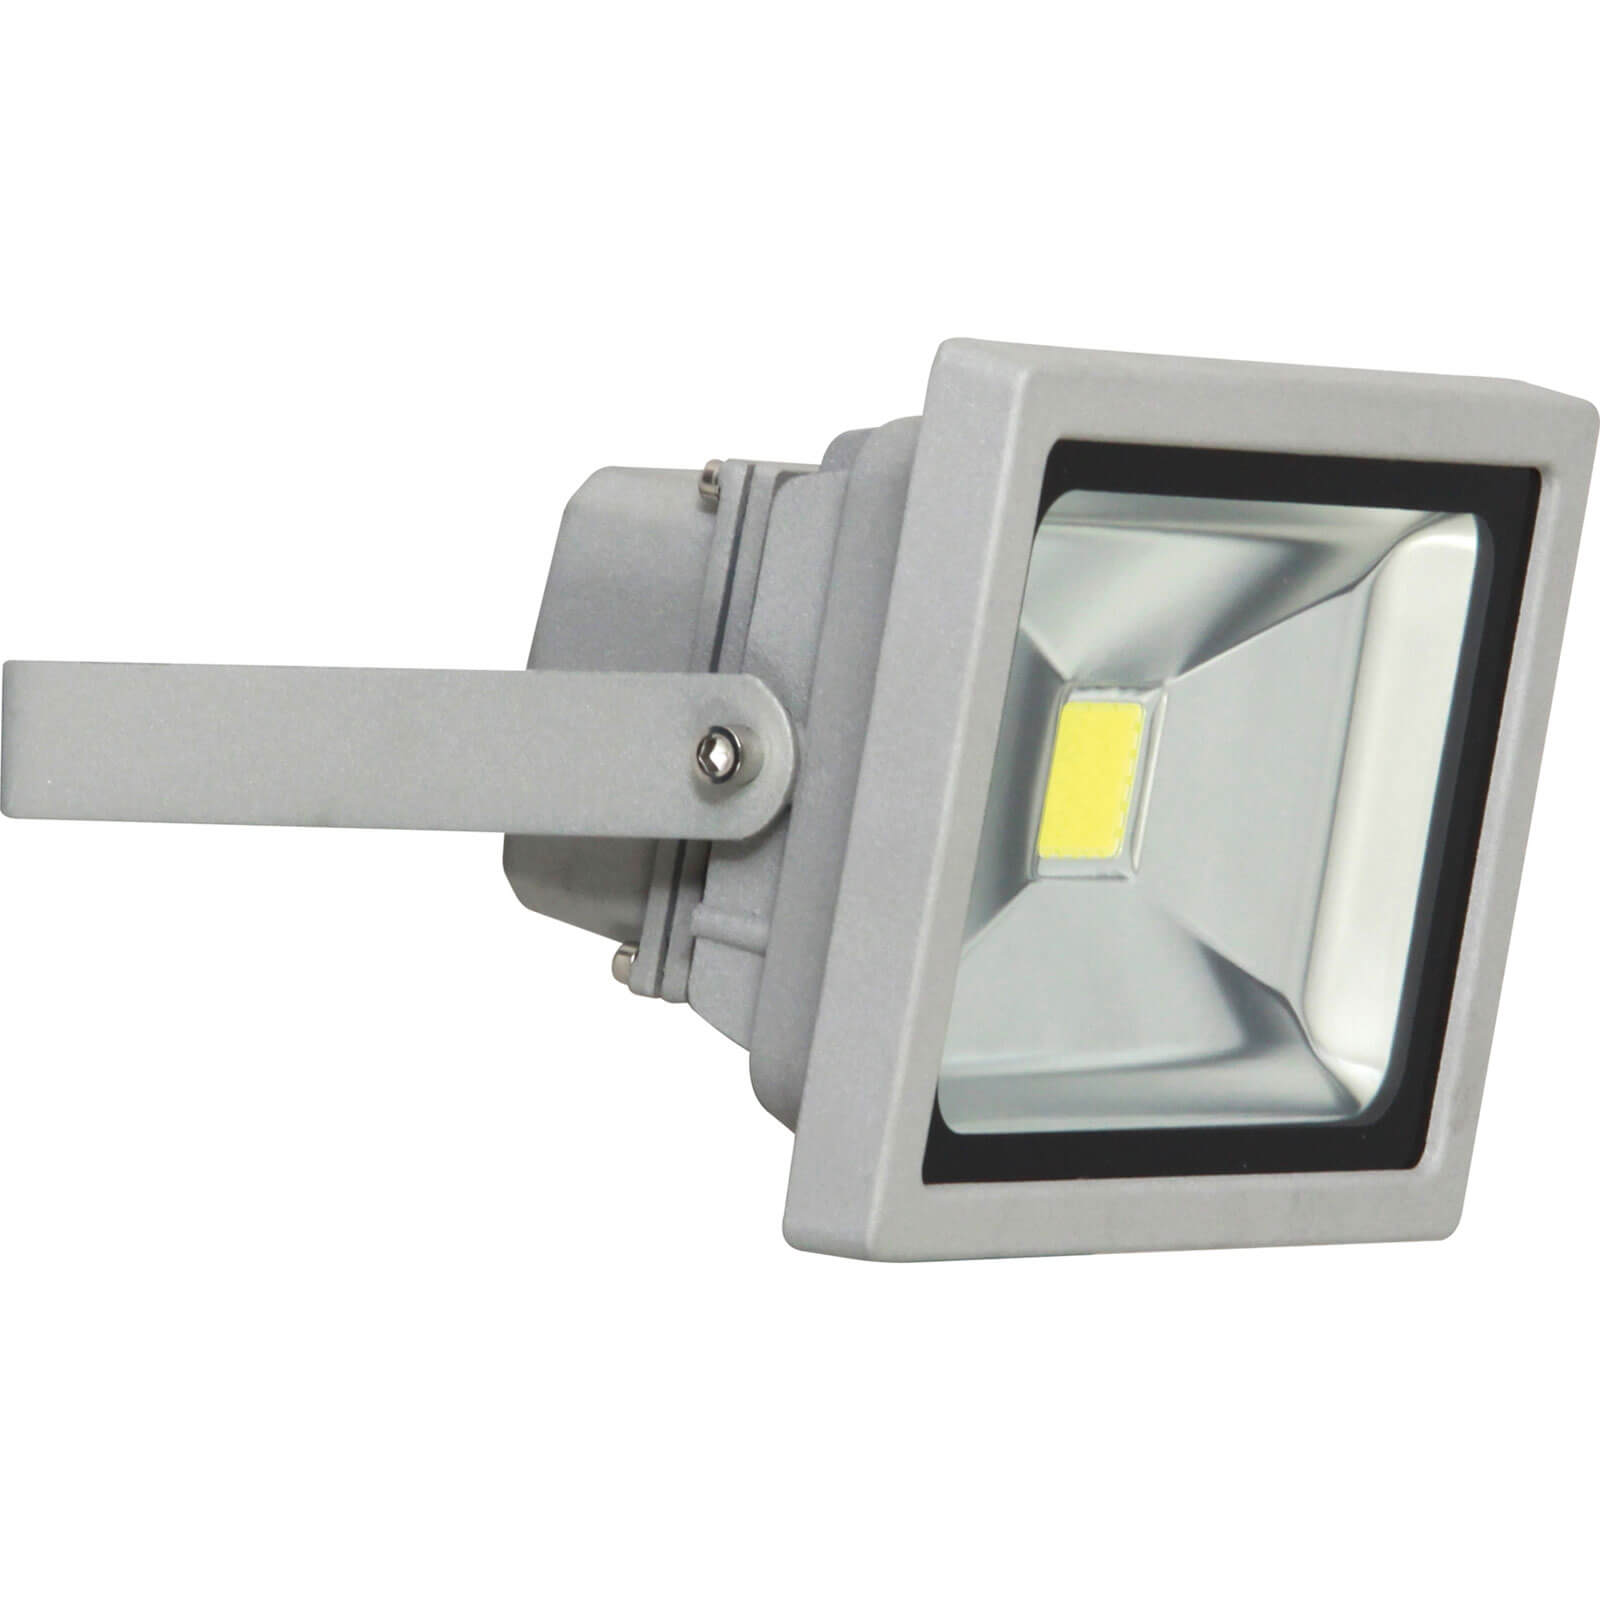 Byron XQ1220 SMD LED Floodlight 1200 Lumens 20w 240v